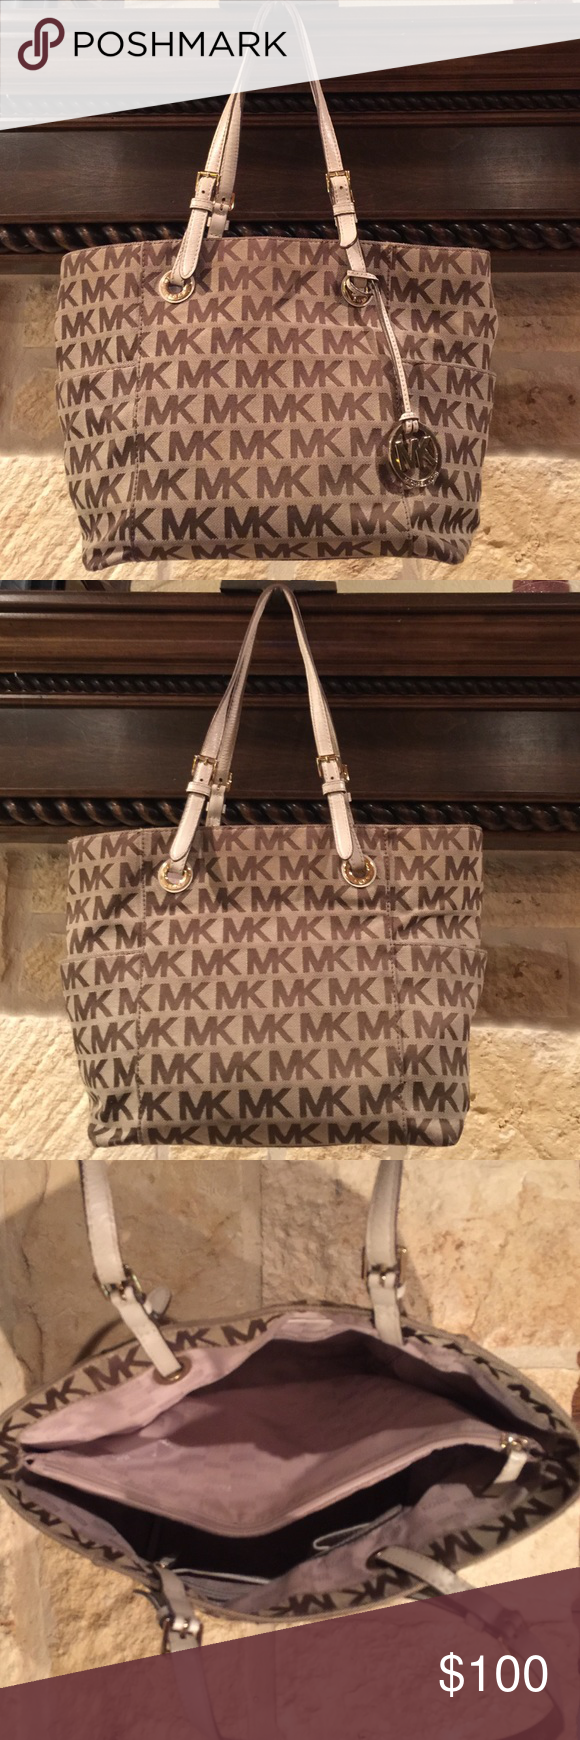 fb8aa789856a ... closeout michael kors brown bag light brown with dark brown mk letters  off white strap.